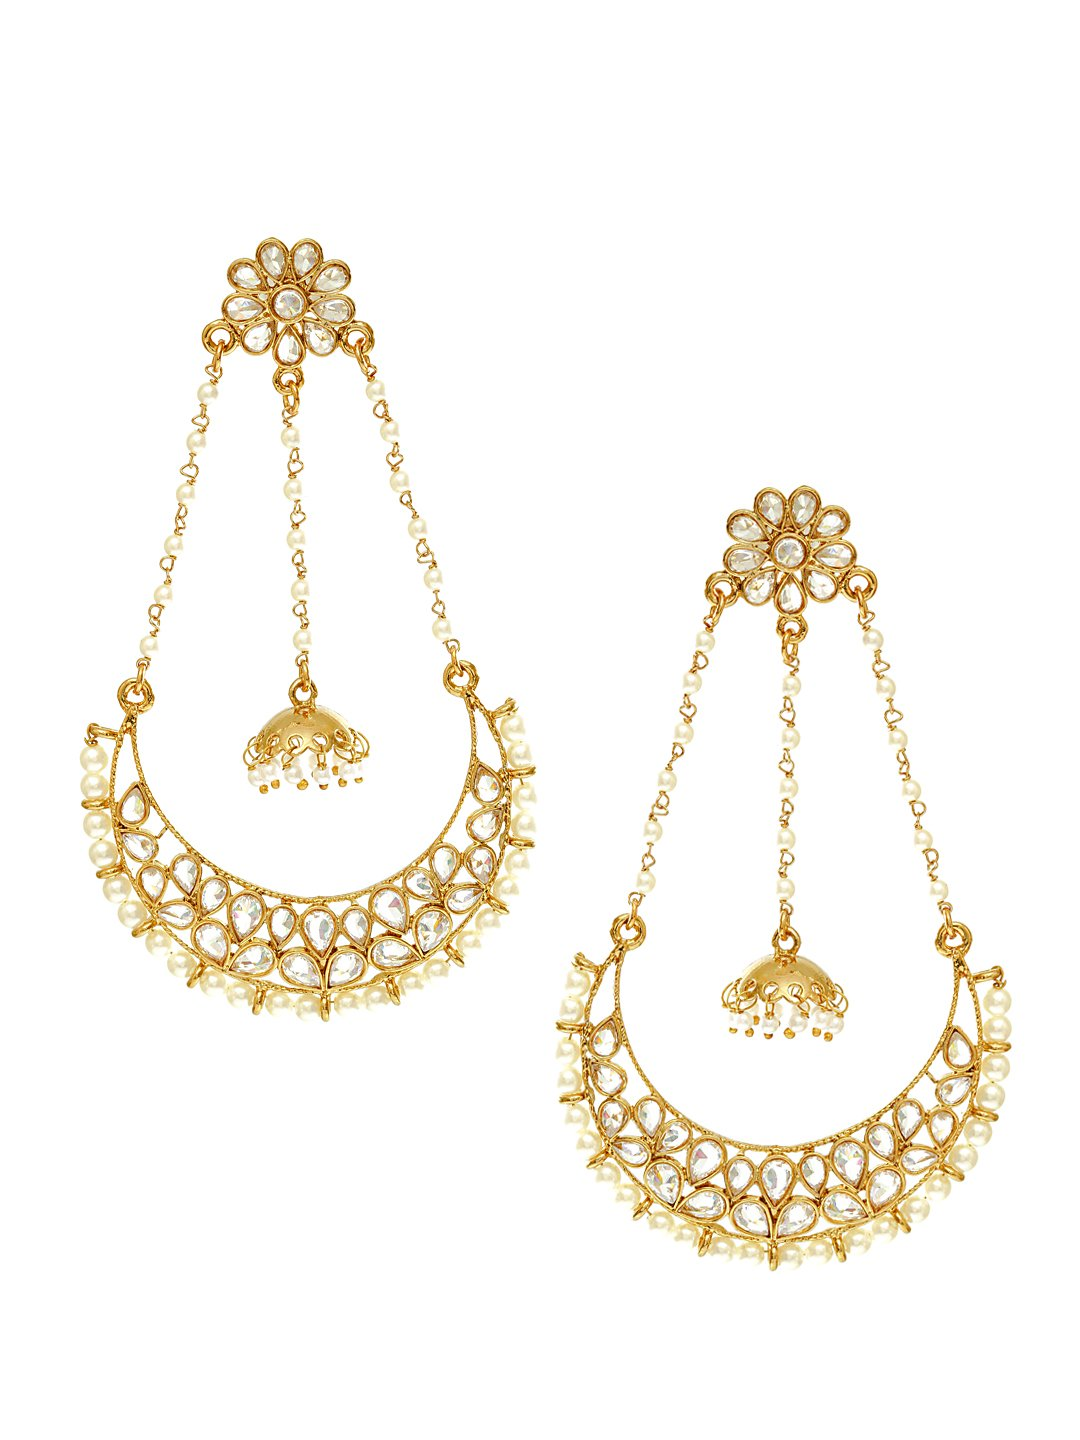 Rubans Gold Plated Traditional Indian Jewelry Bollywood Ethnic Wedding Bridal Rhinestone and Pearls Long Chandbali Earrings for Women